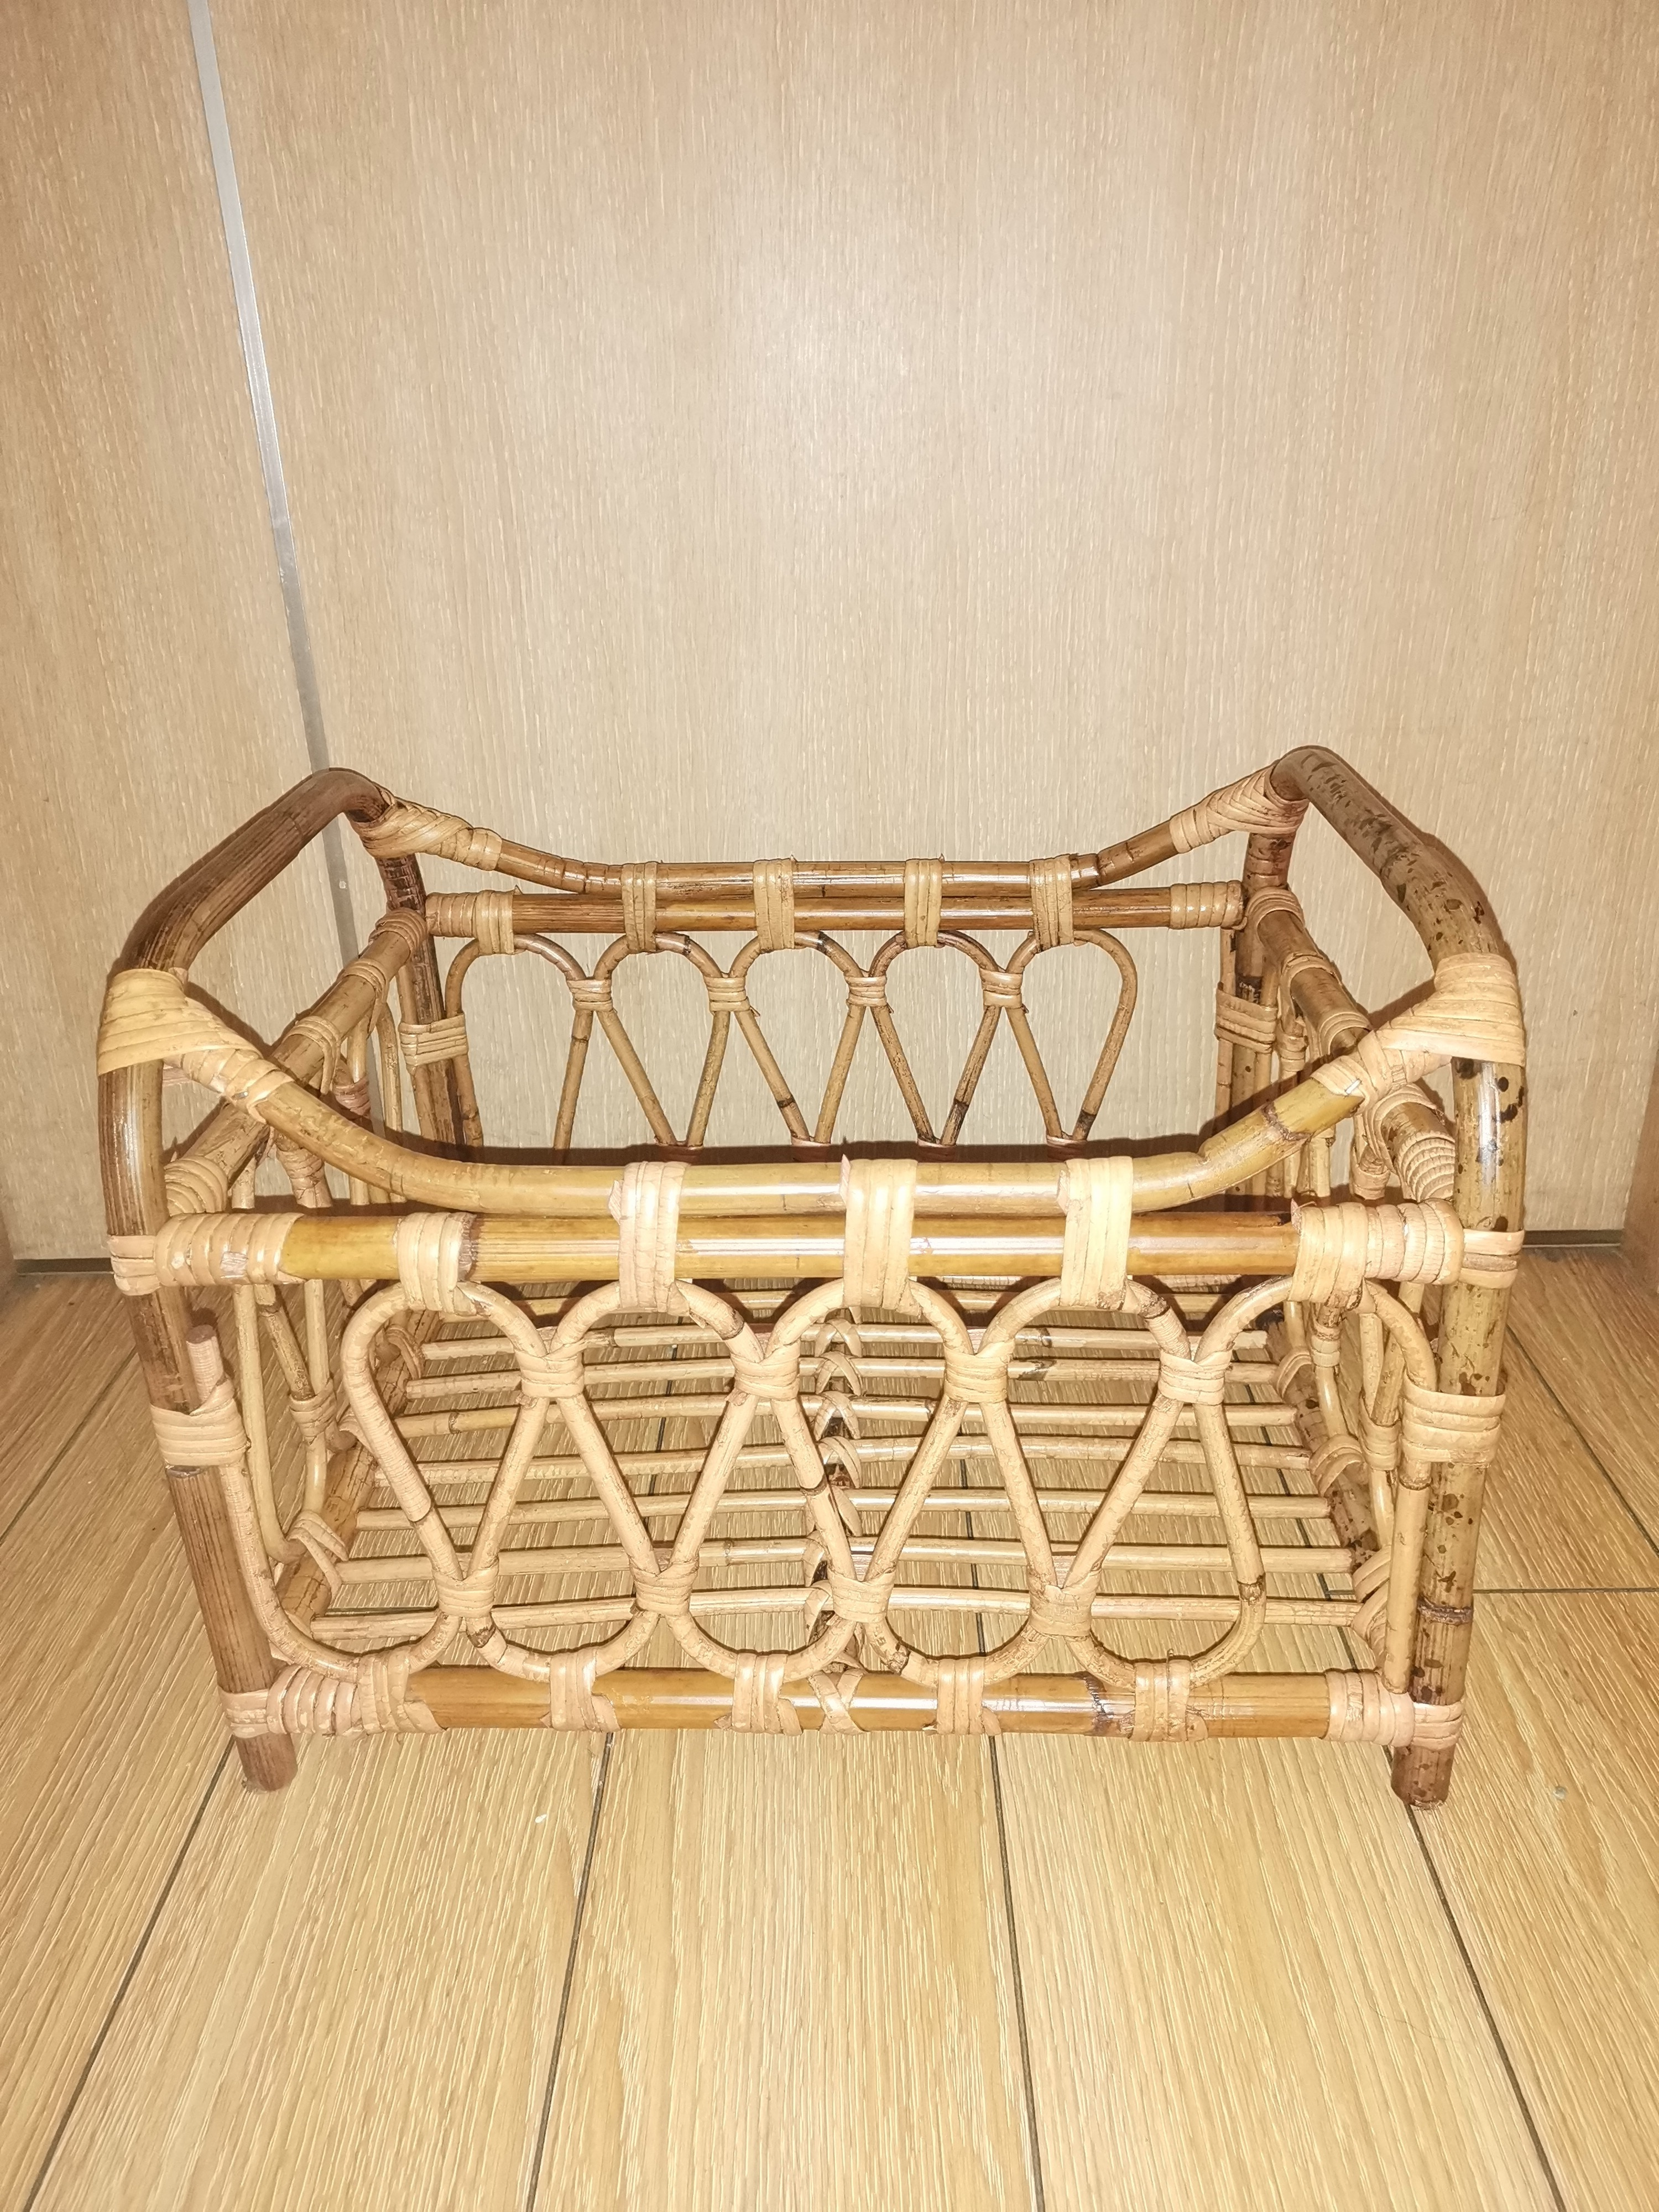 Baby Props Vintage Woven Rattan Basket Newborn 100 Days Photography Props Baskets Baby Posing Sofa Bed Accessoire Shooting Props